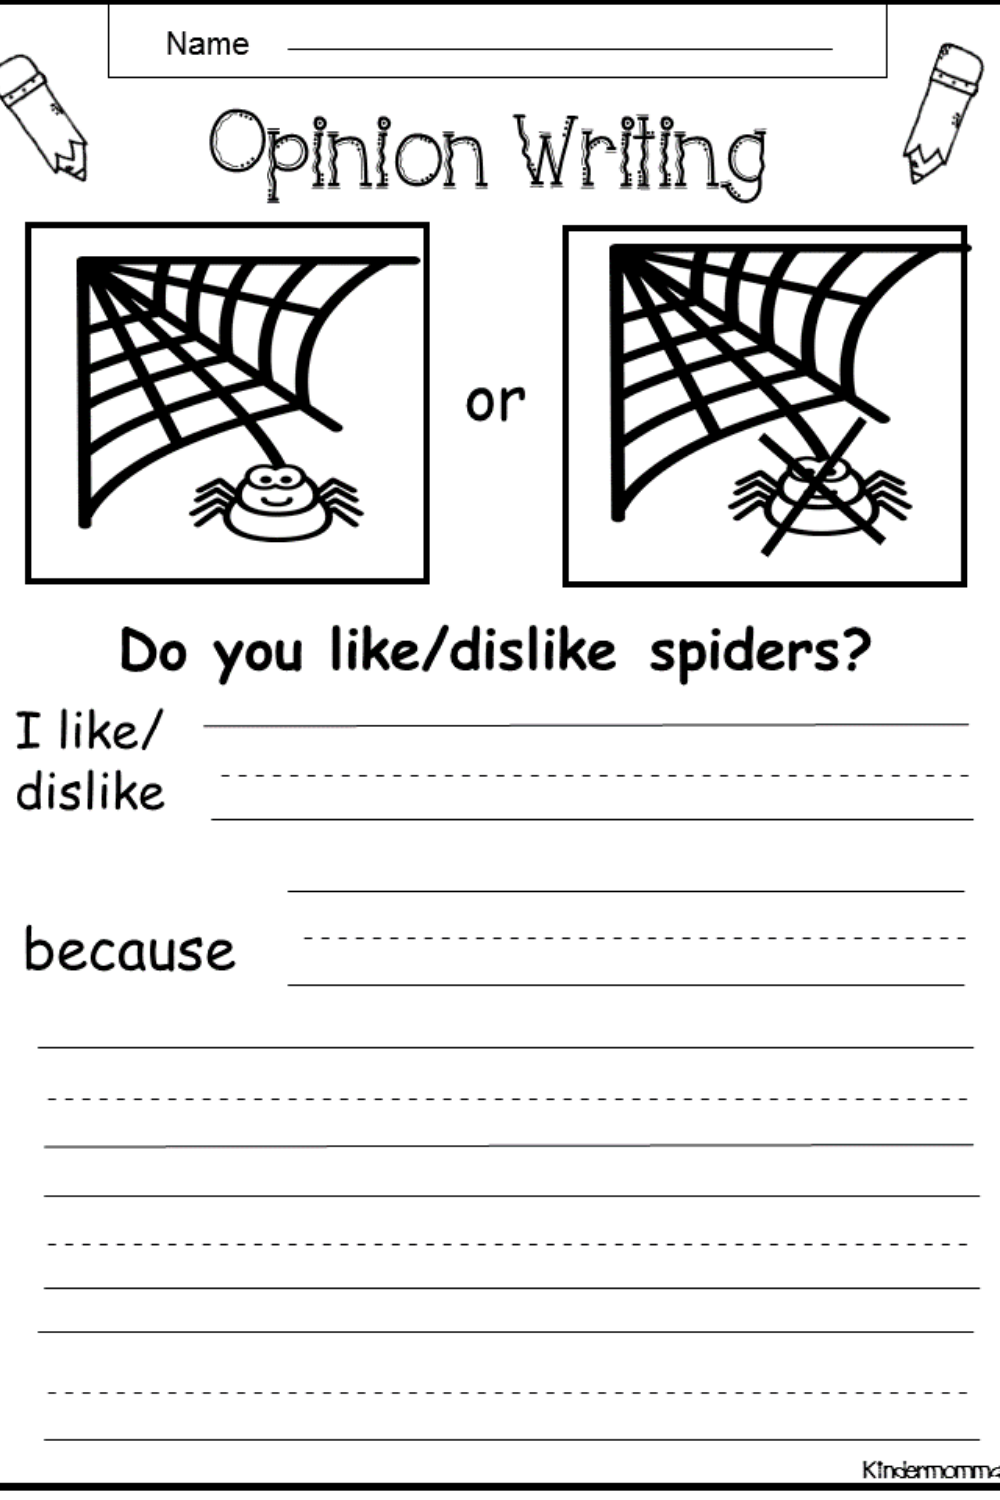 How To Teach Opinion Writing For Kids Kindermomma Com Opinion Writing Phonics Words Kindergarten Literacy Worksheets [ 1500 x 1000 Pixel ]